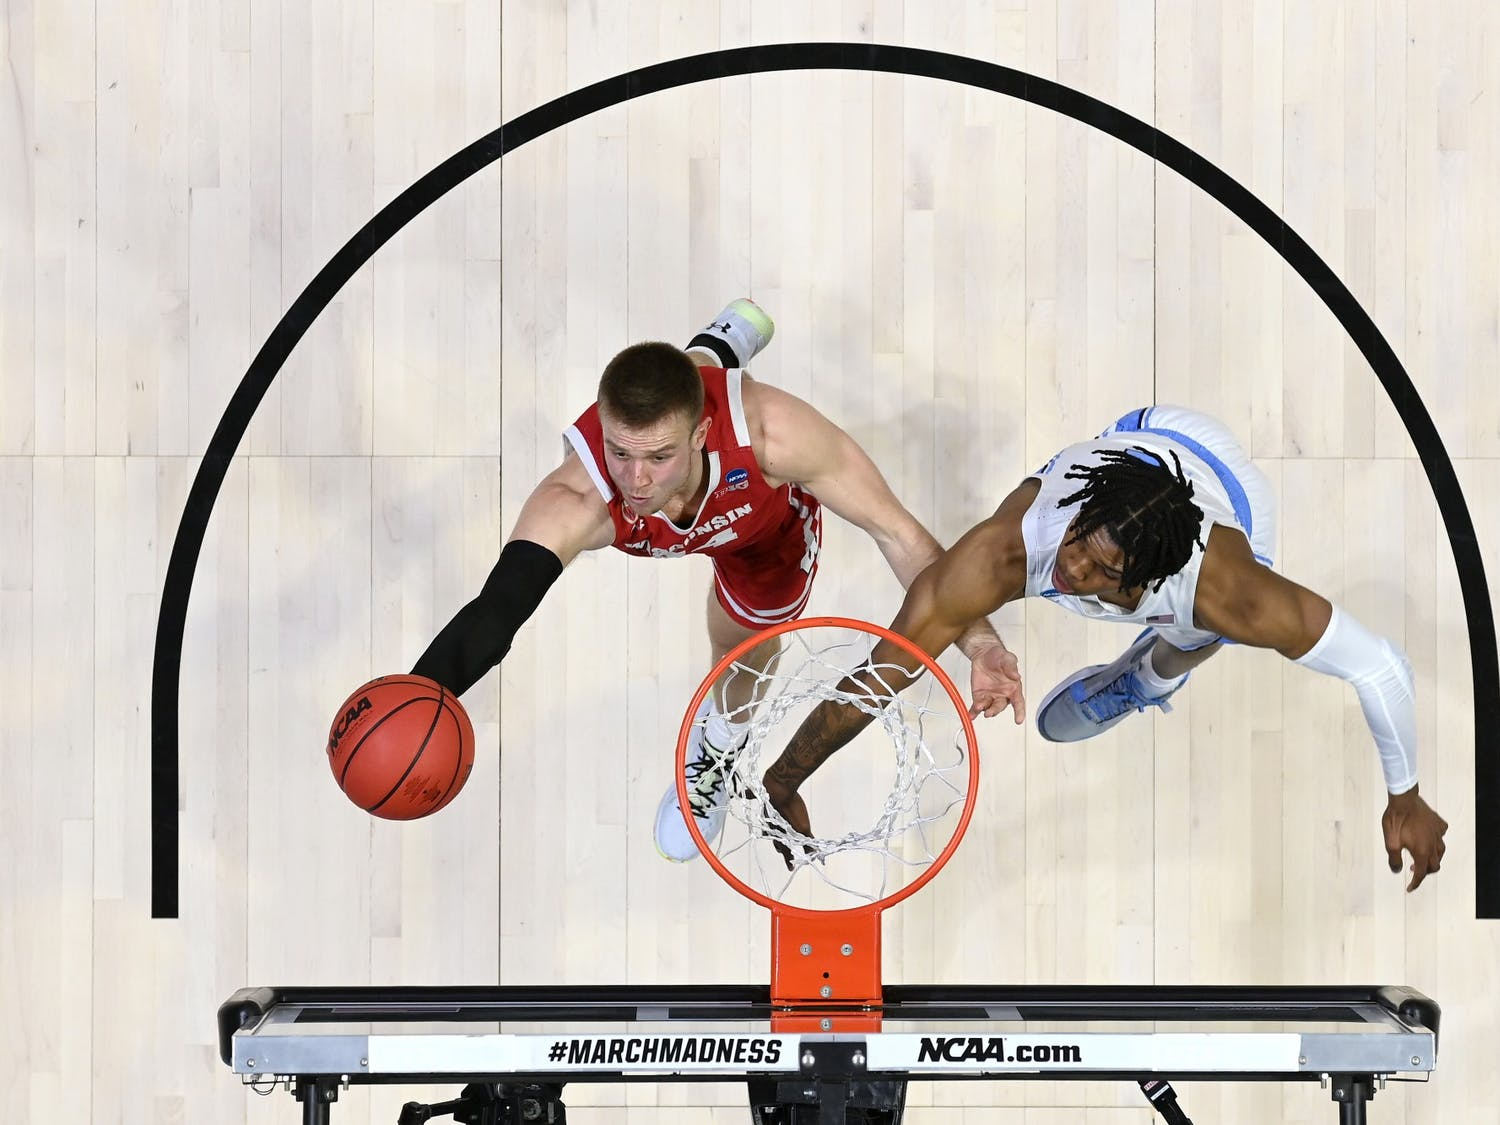 WEST LAFAYETTE, IN - MARCH 19: Brad Davison of Wisconsin works to get a shot past Caleb Love of North Carolina in the first round of the 2021 NCAA Division I Men's Basketball Tournament held at Mackey Arena on March 19, 2021 in West Lafayette, Indiana. Photo by Andy Hancock/NCAA Photos/NCAA Photos via Getty Images